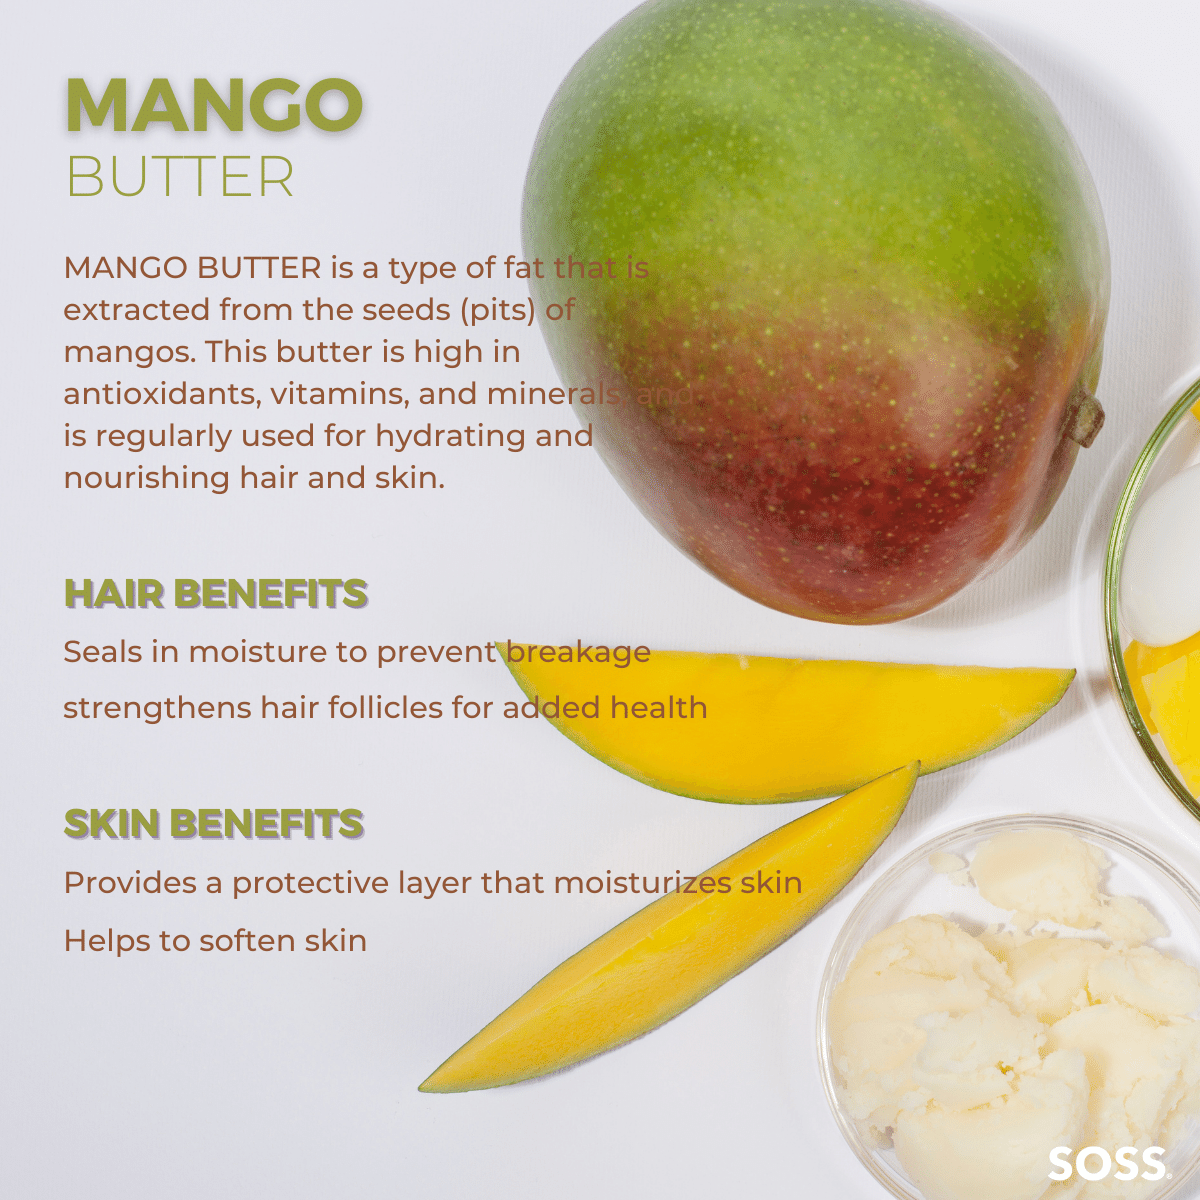 Mango Butter is a natural substance, high in fats, that prevents hair breakage.